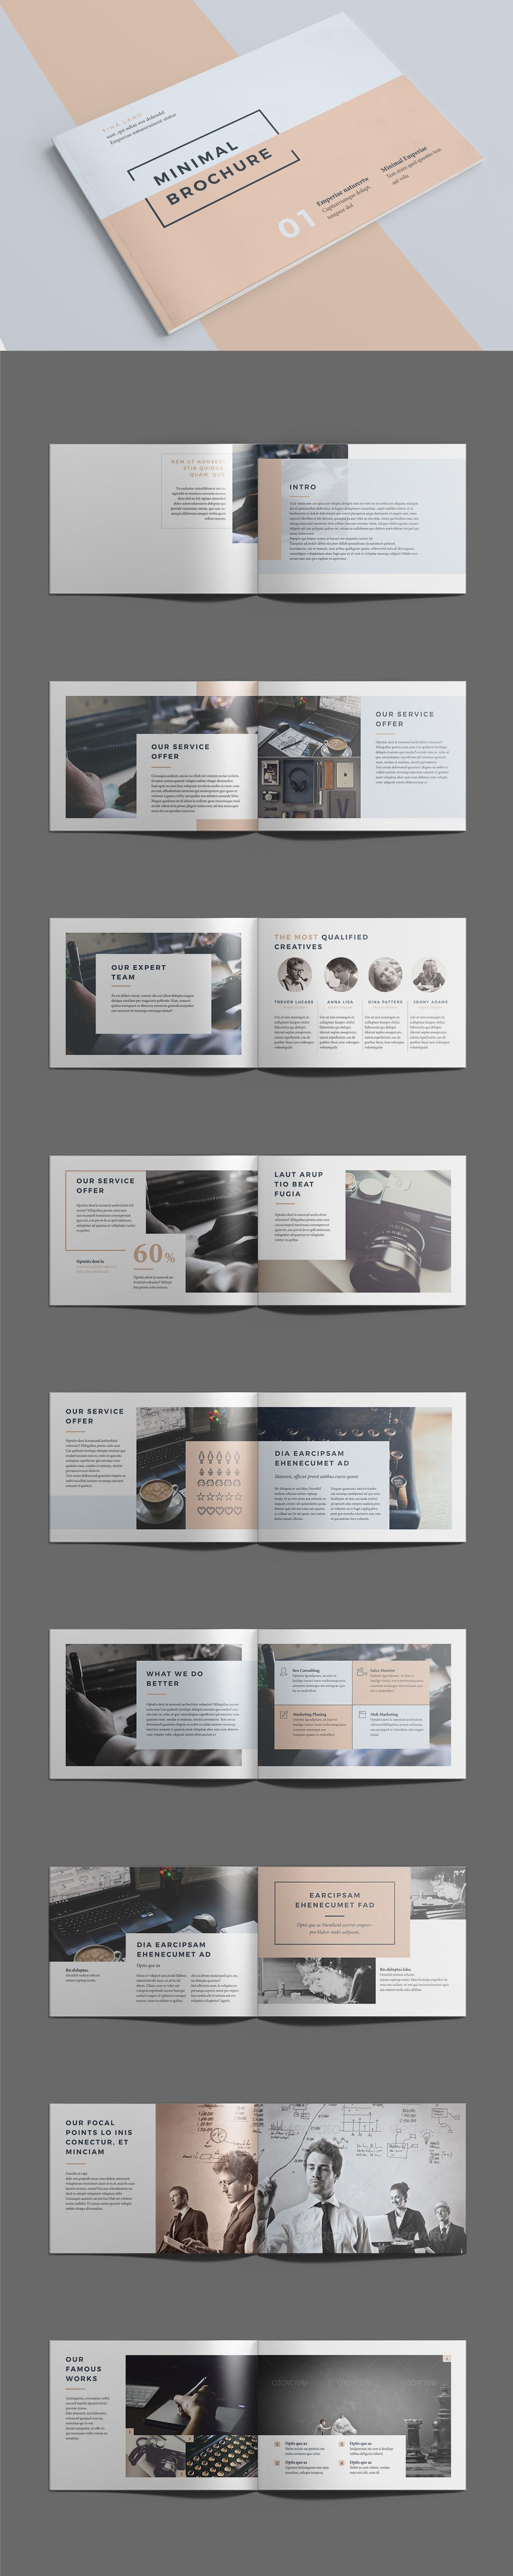 Minimal Brochure Template InDesign INDD - 18 Pages, A5 | PAPEL ...